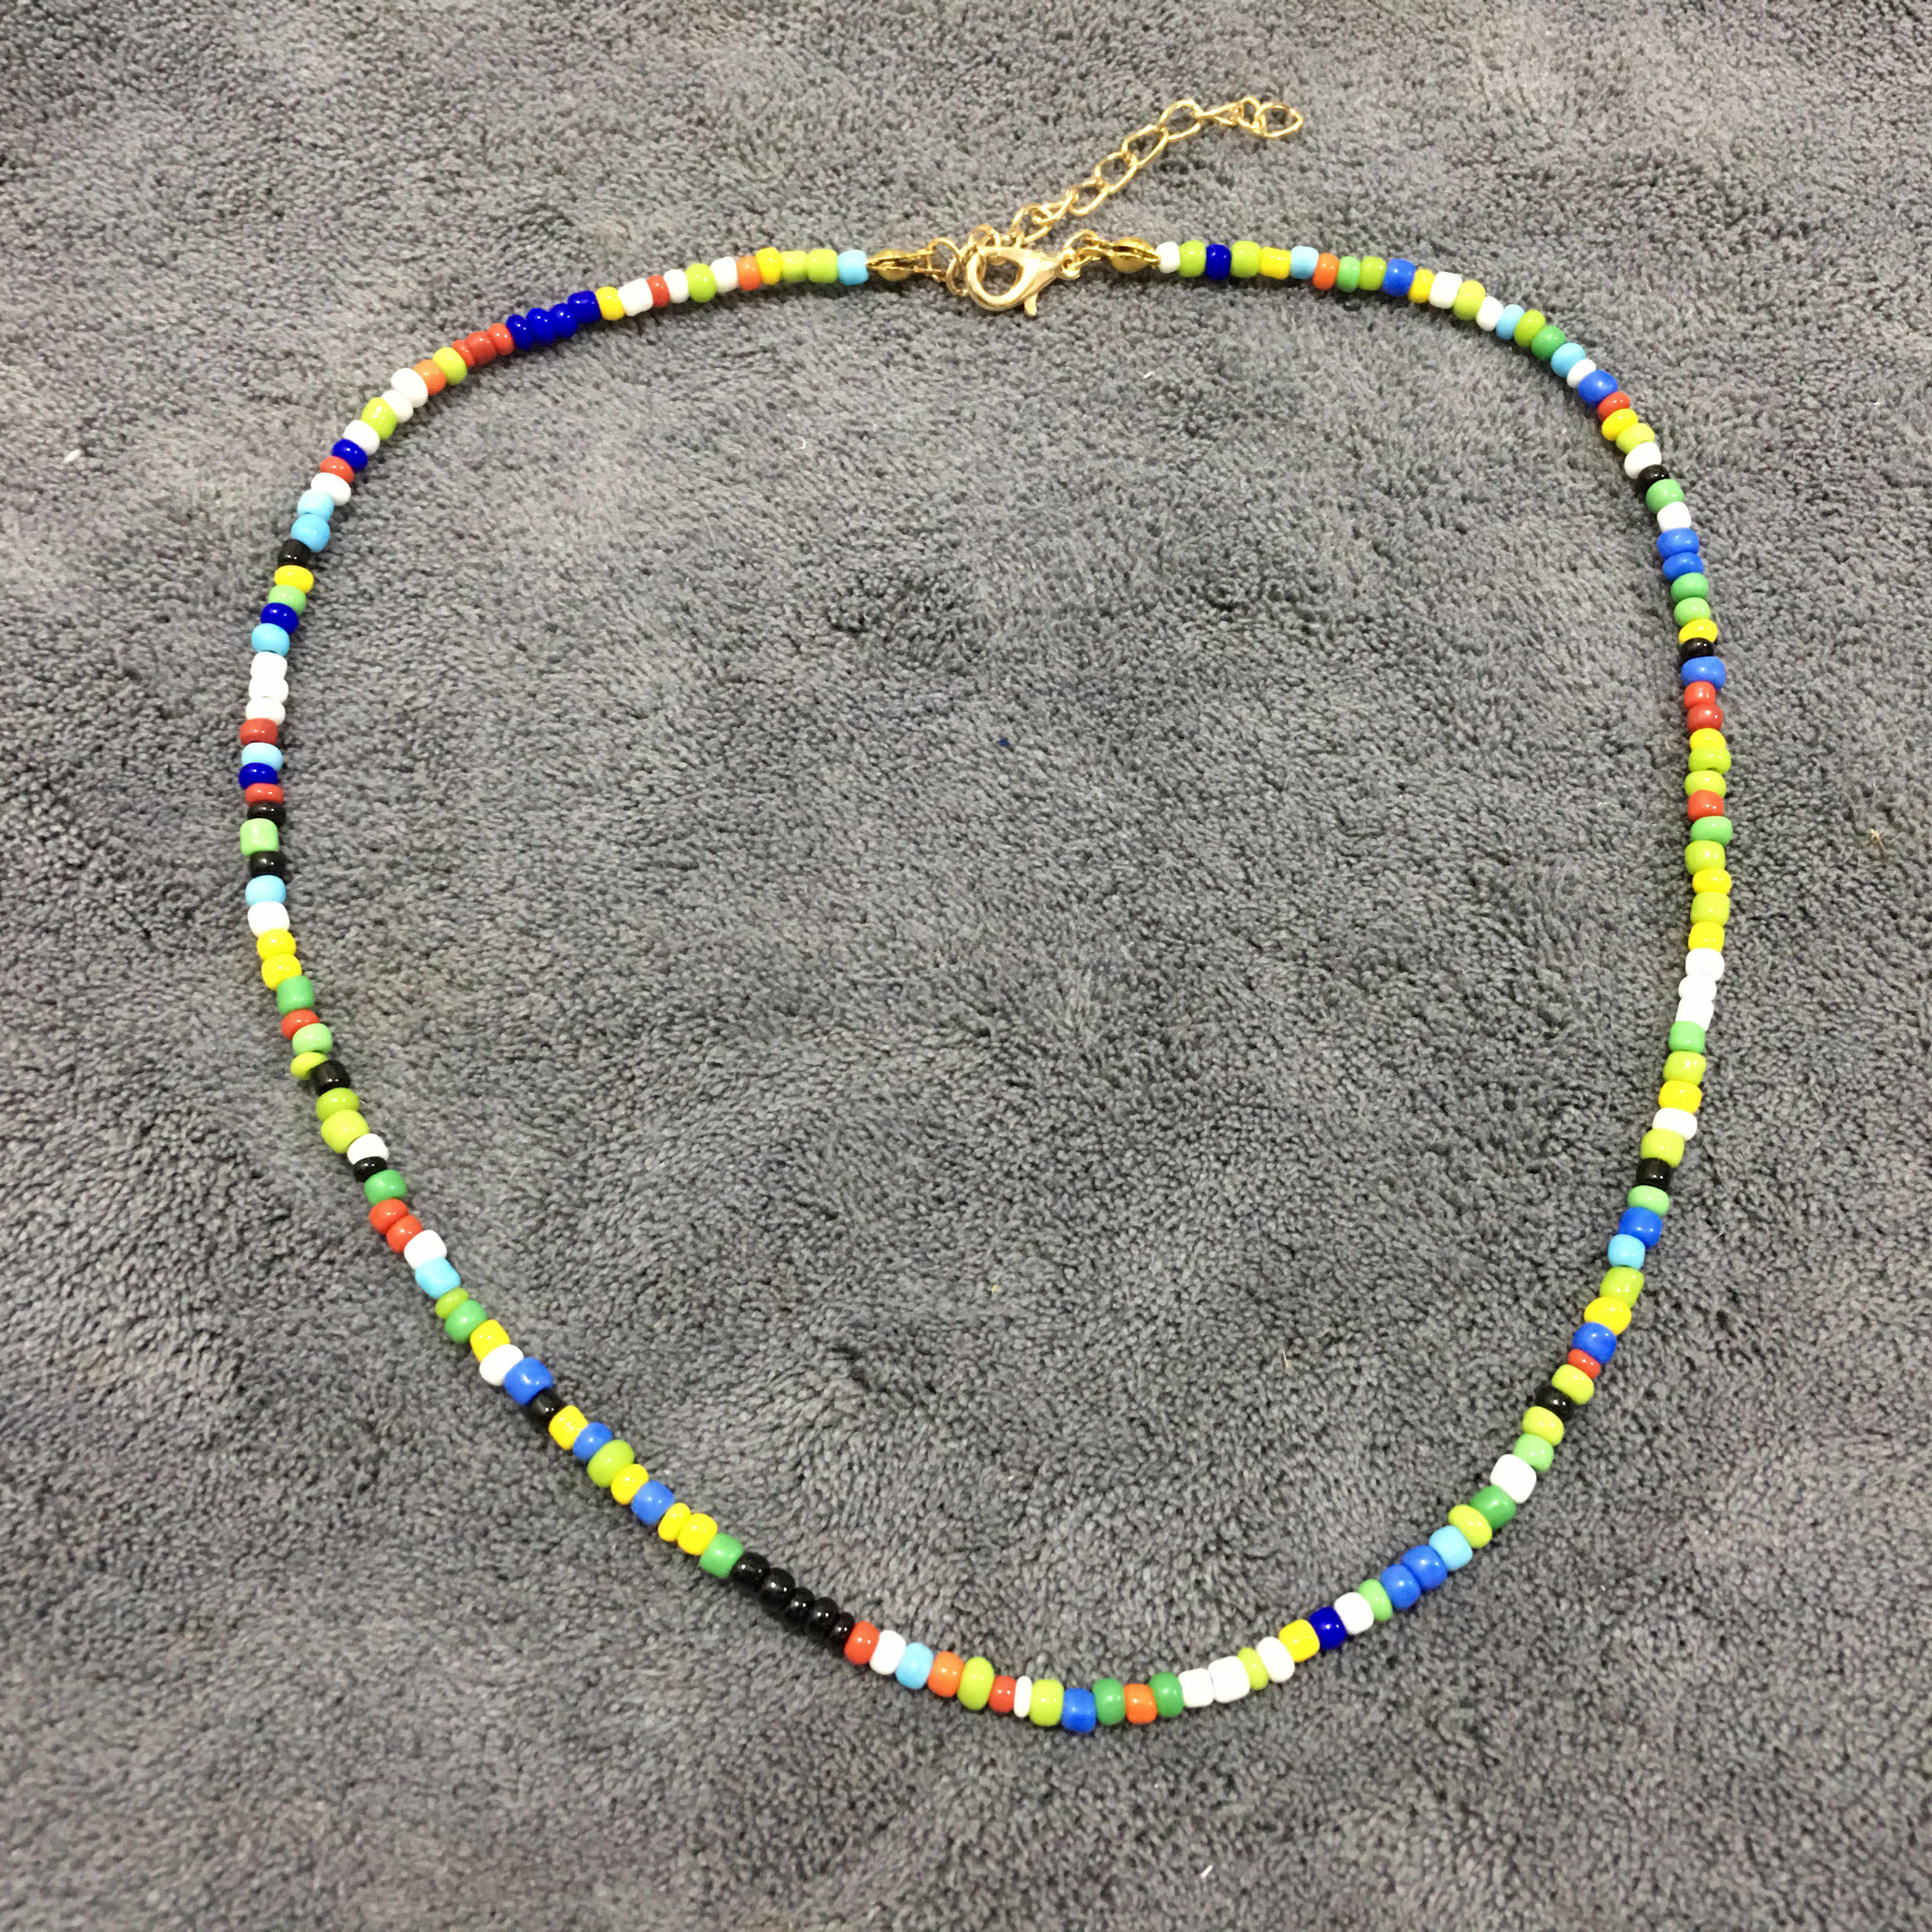 Simple Seed Beads Strand Necklace Women String Beaded Short Choker Necklace Jewelry 16 inches Chokers Necklace Gift